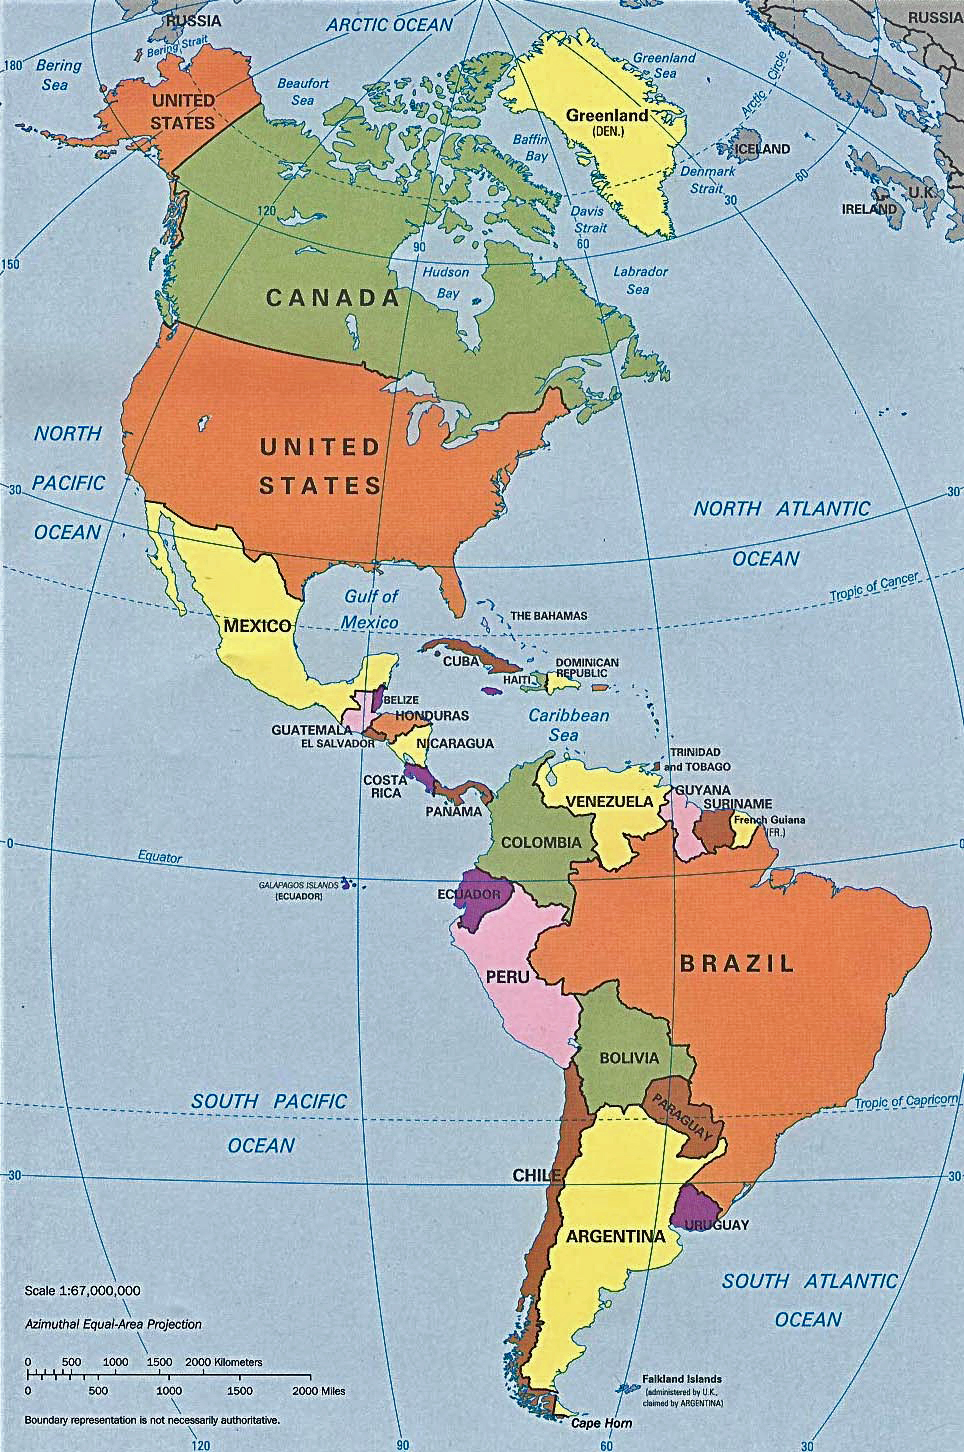 the big start of spanglish in the united states was in 1848 vii when at one point a big part of mexican territory was sold to the united states